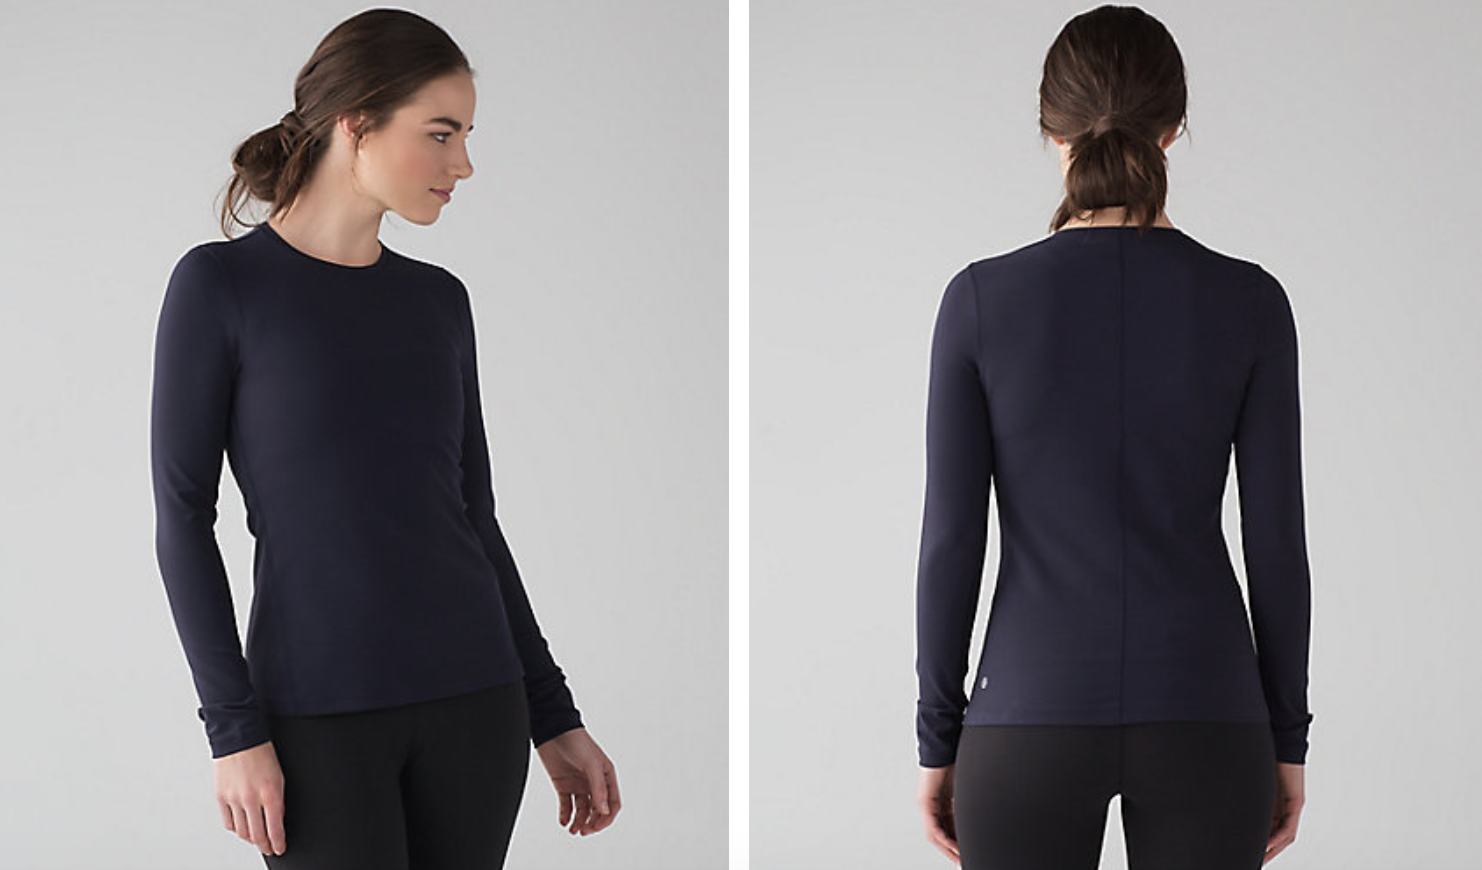 Lululemon Arise Long Sleeve